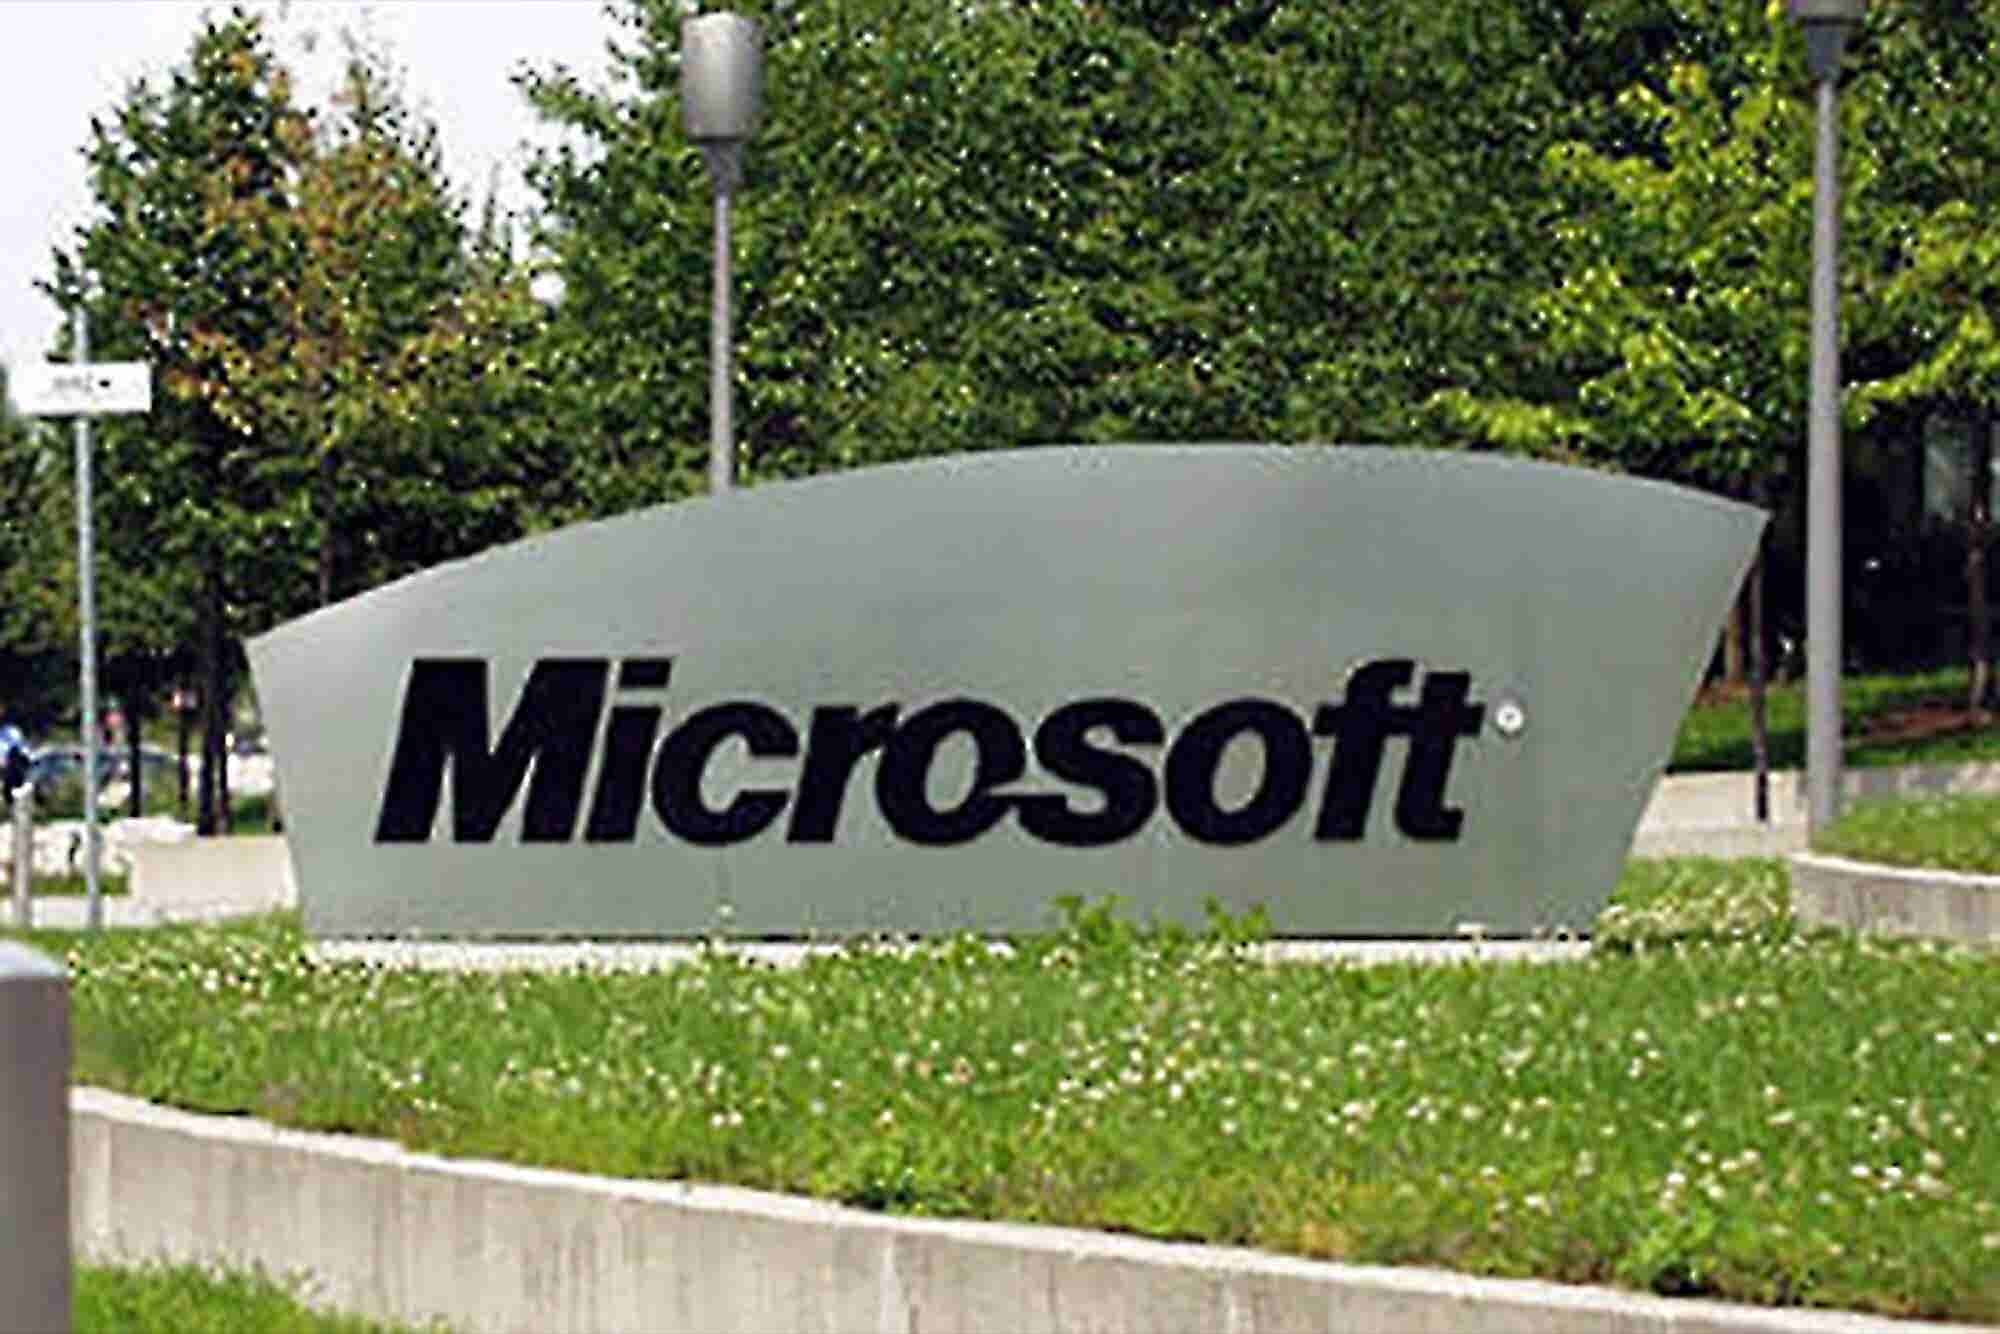 How Entrepreneurs Can Avoid Microsoft's SkyDrive Trademark Misstep